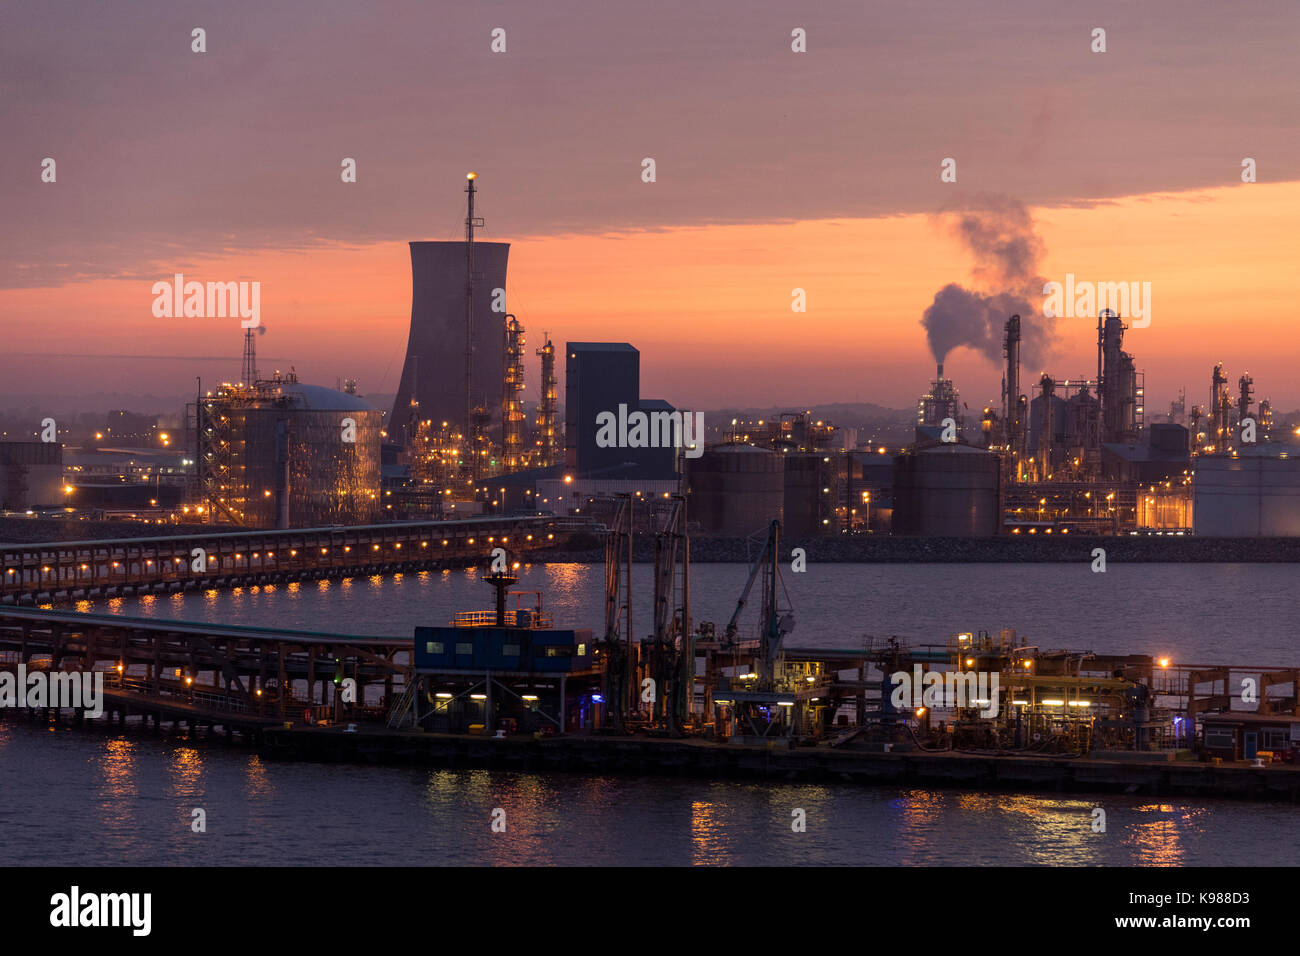 Dawn over the industrial skyline of the Humber Estuary near the city of Hull in northeast England. - Stock Image